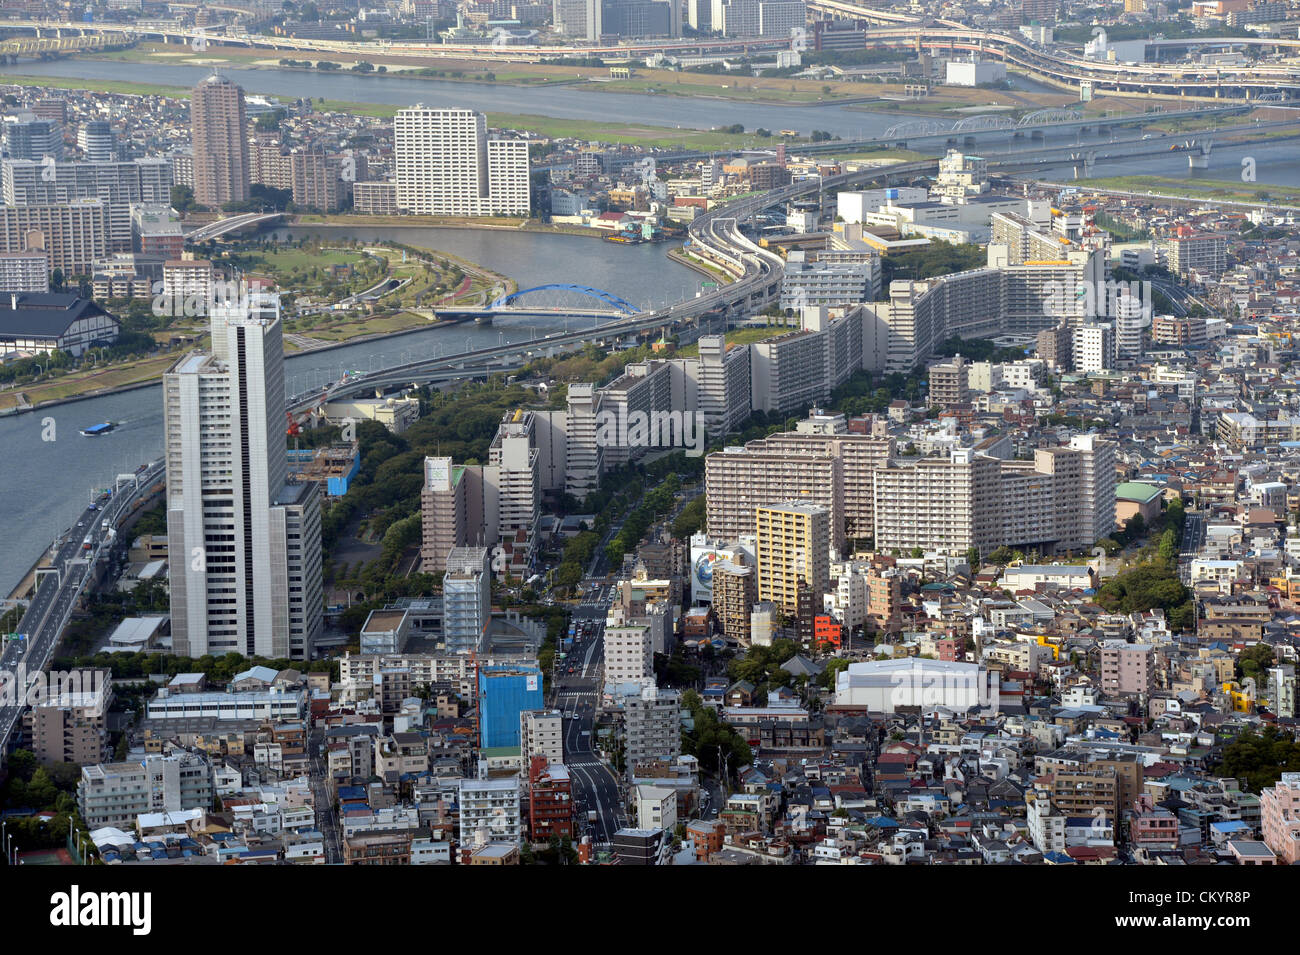 September 5, 2012, Tokyo, Japan - A cluster of decrepit houses stand side by side along narrow allies barely wide Stock Photo